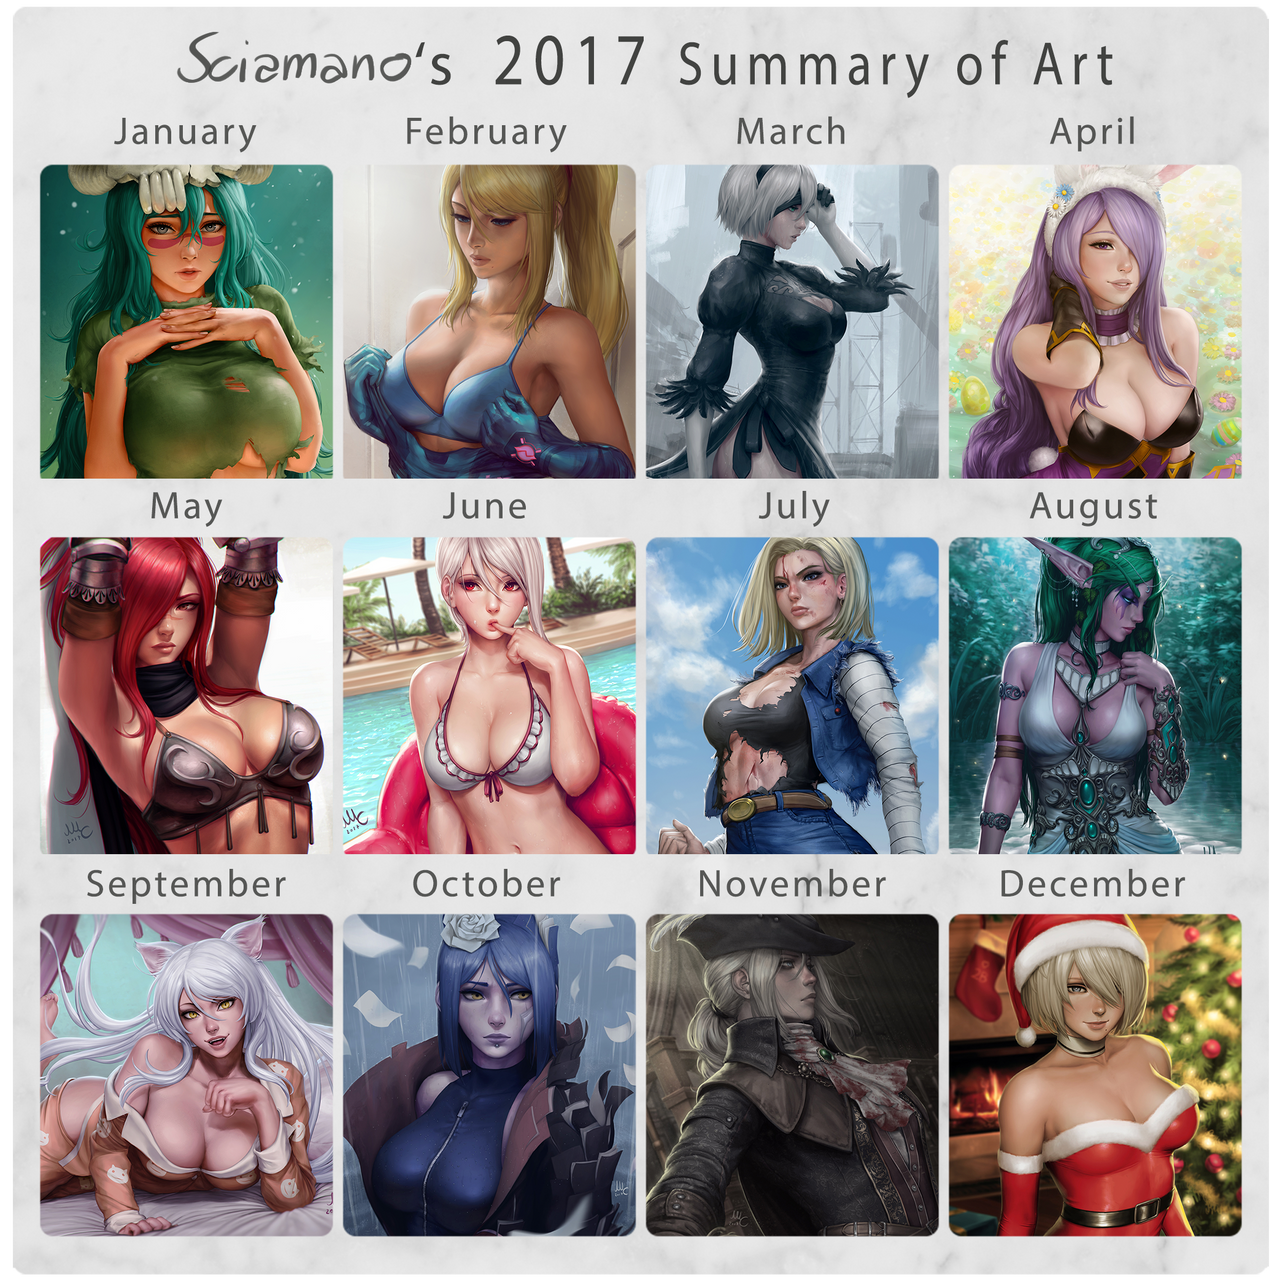 Sciamano's 2017 Summary of Art by Sciamano240